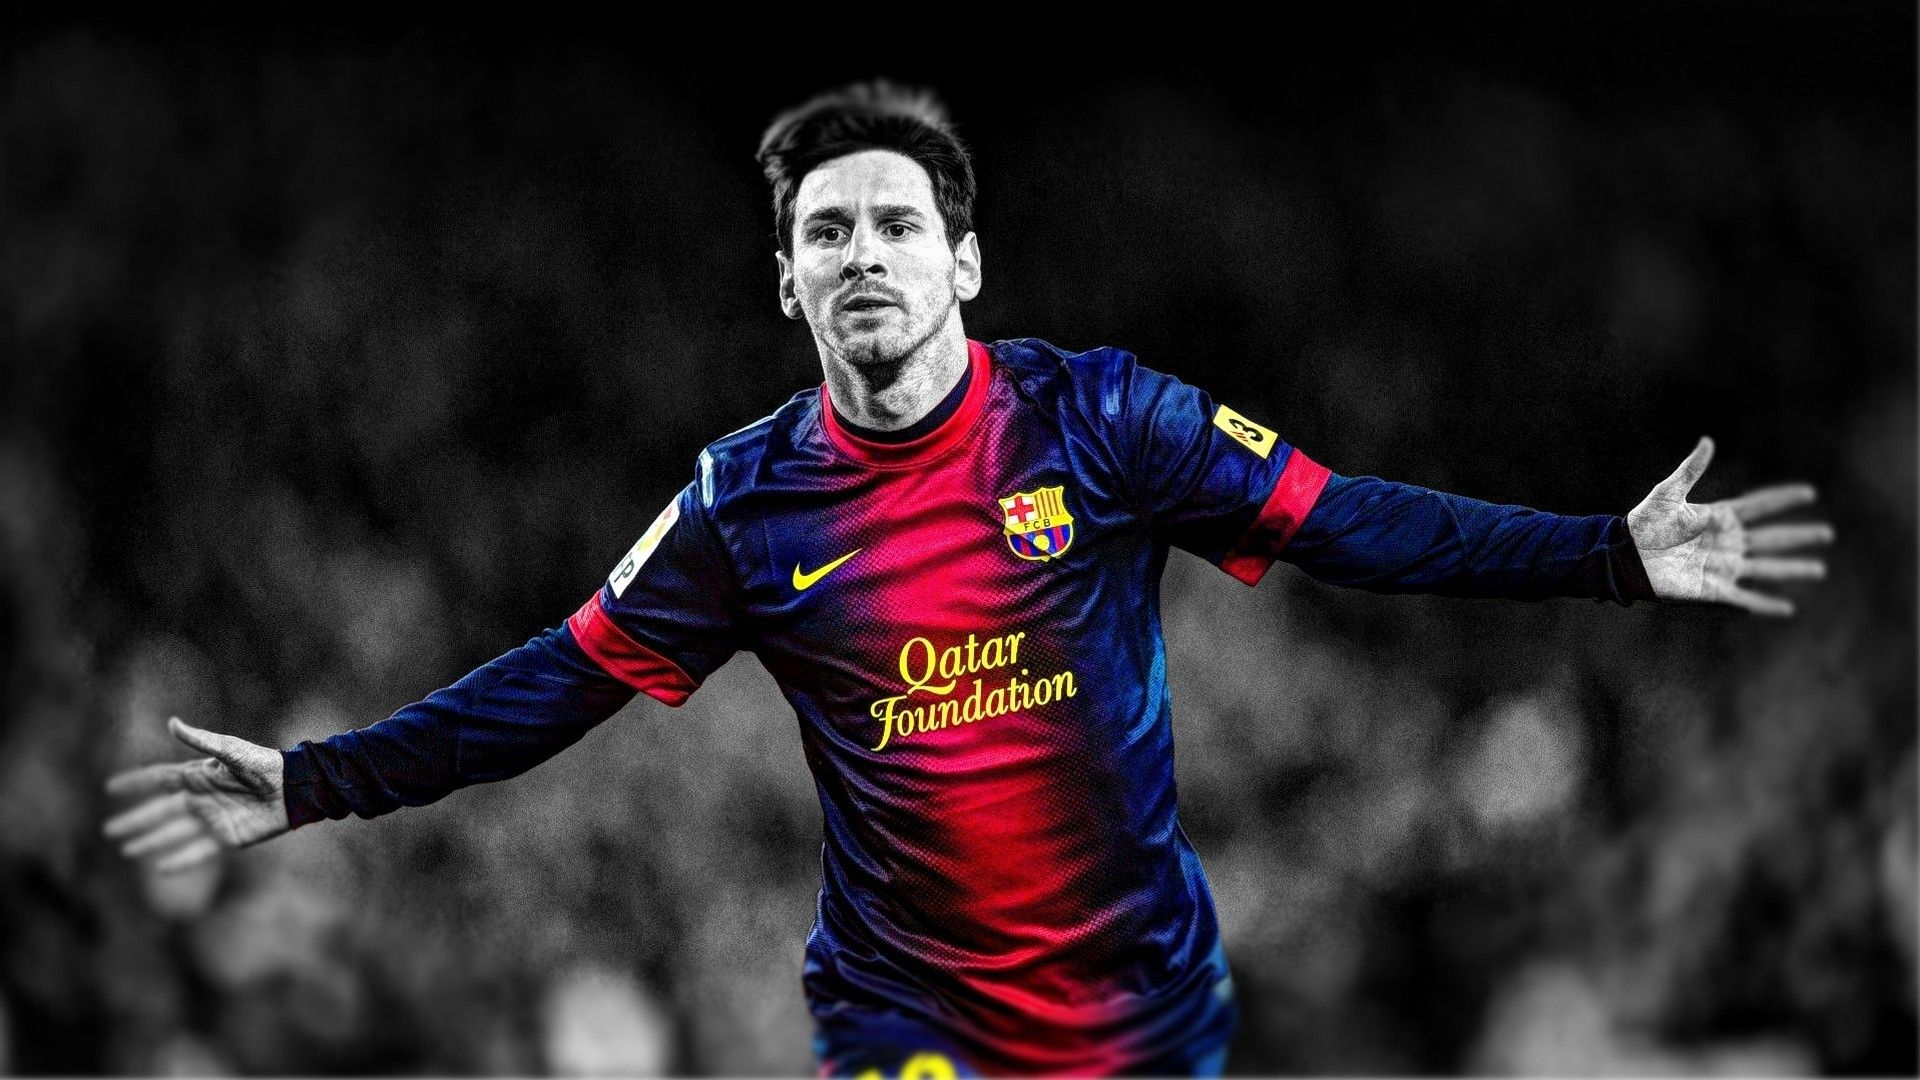 Cool soccer hd wallpapers and pictures download free hd cool soccer hd wallpapers and pictures download free voltagebd Images